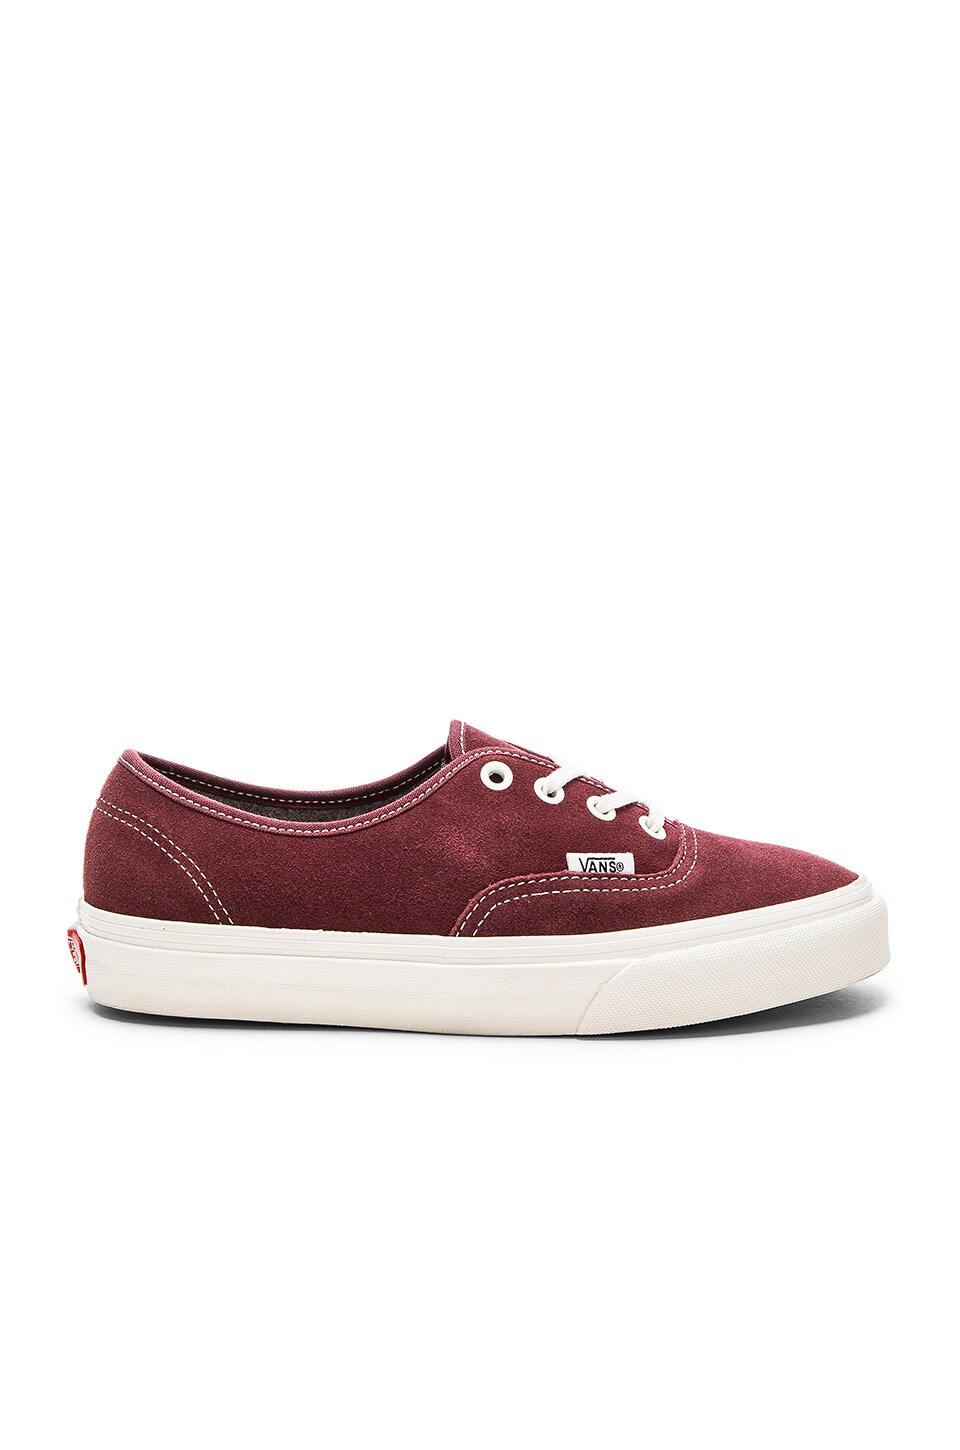 Vans Authentic Sneaker in Red Mahogany